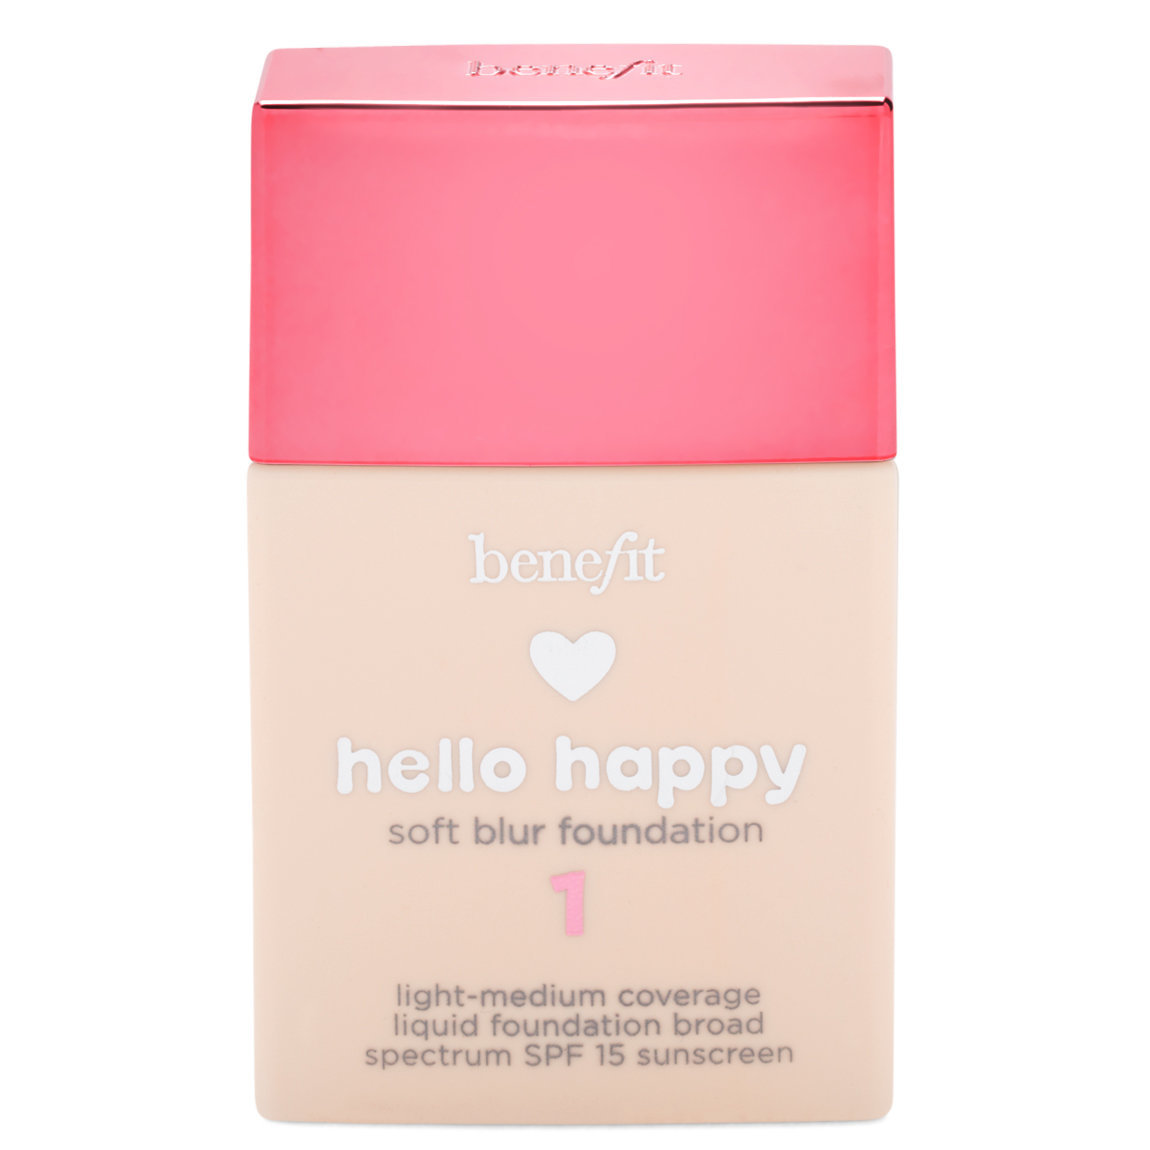 Benefit Cosmetics Hello Happy Foundation 01 Fair - Cool